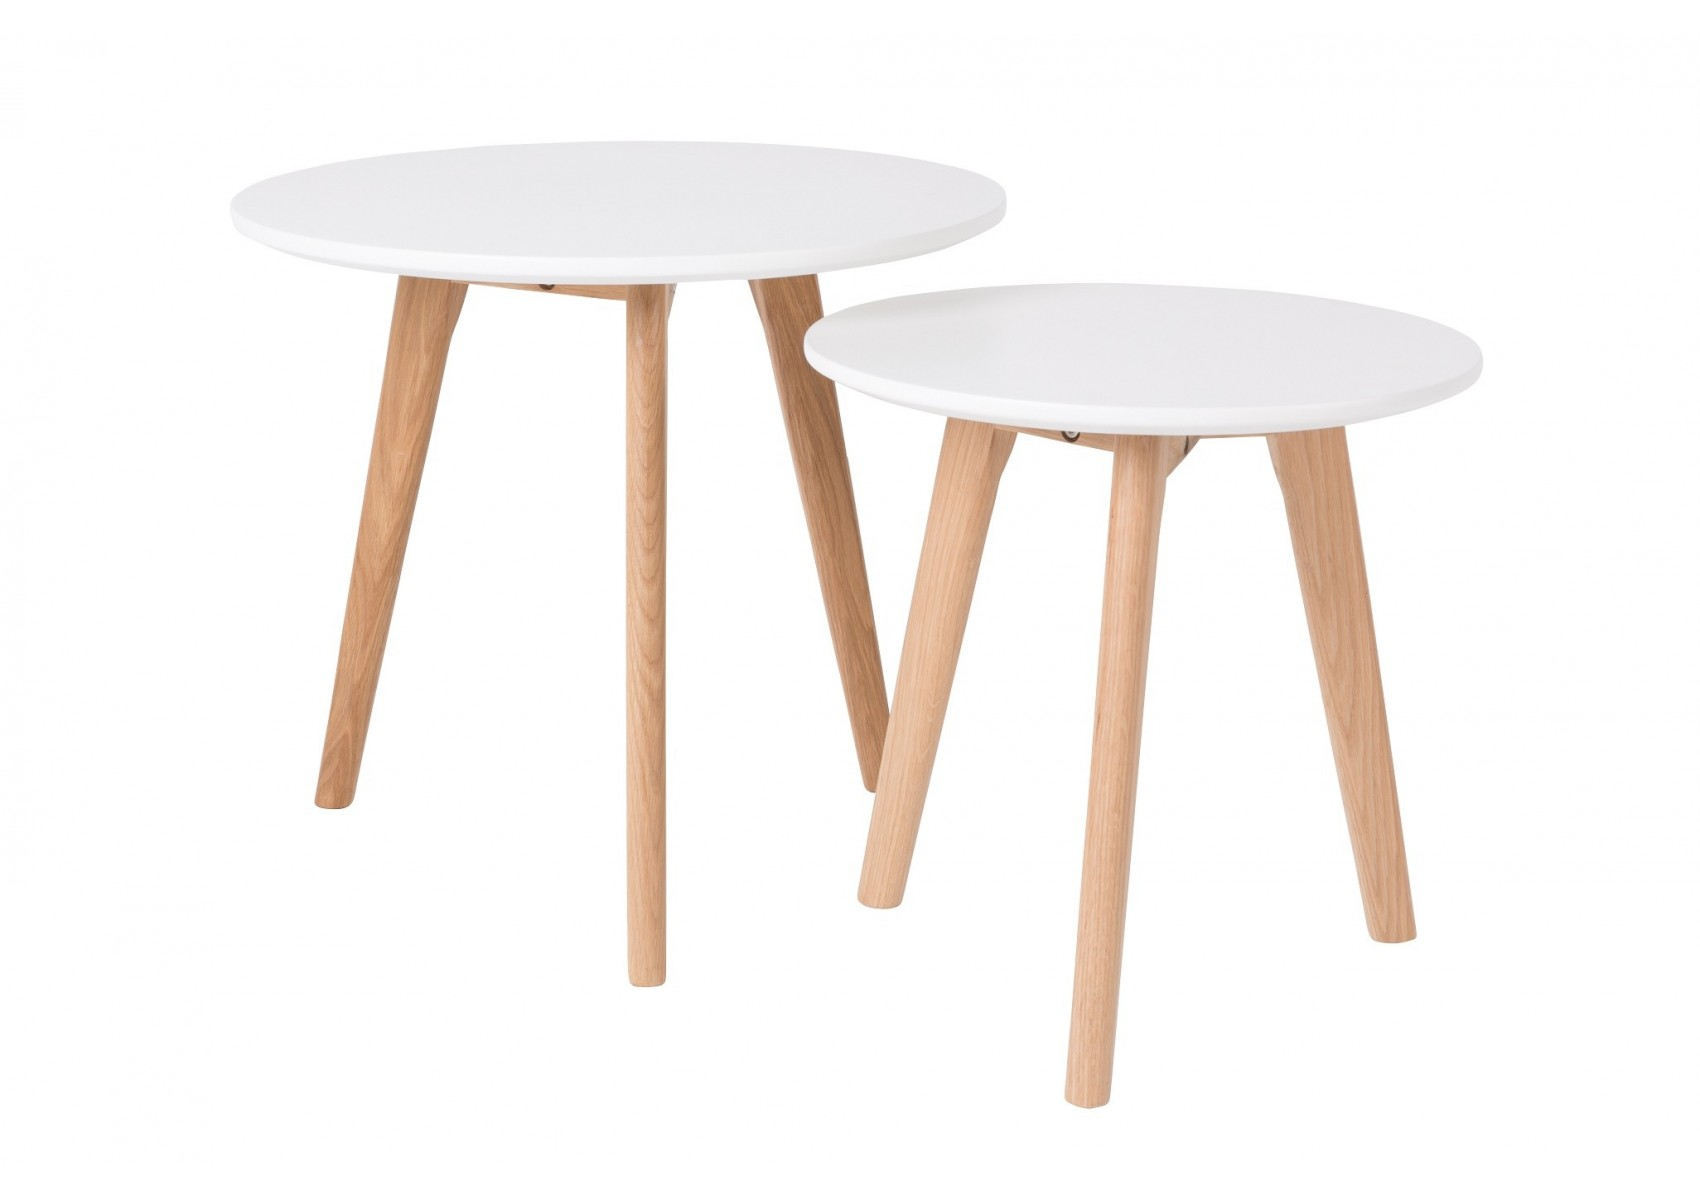 Tables Basses Scandinave Bodine Set De 2 Boite Design